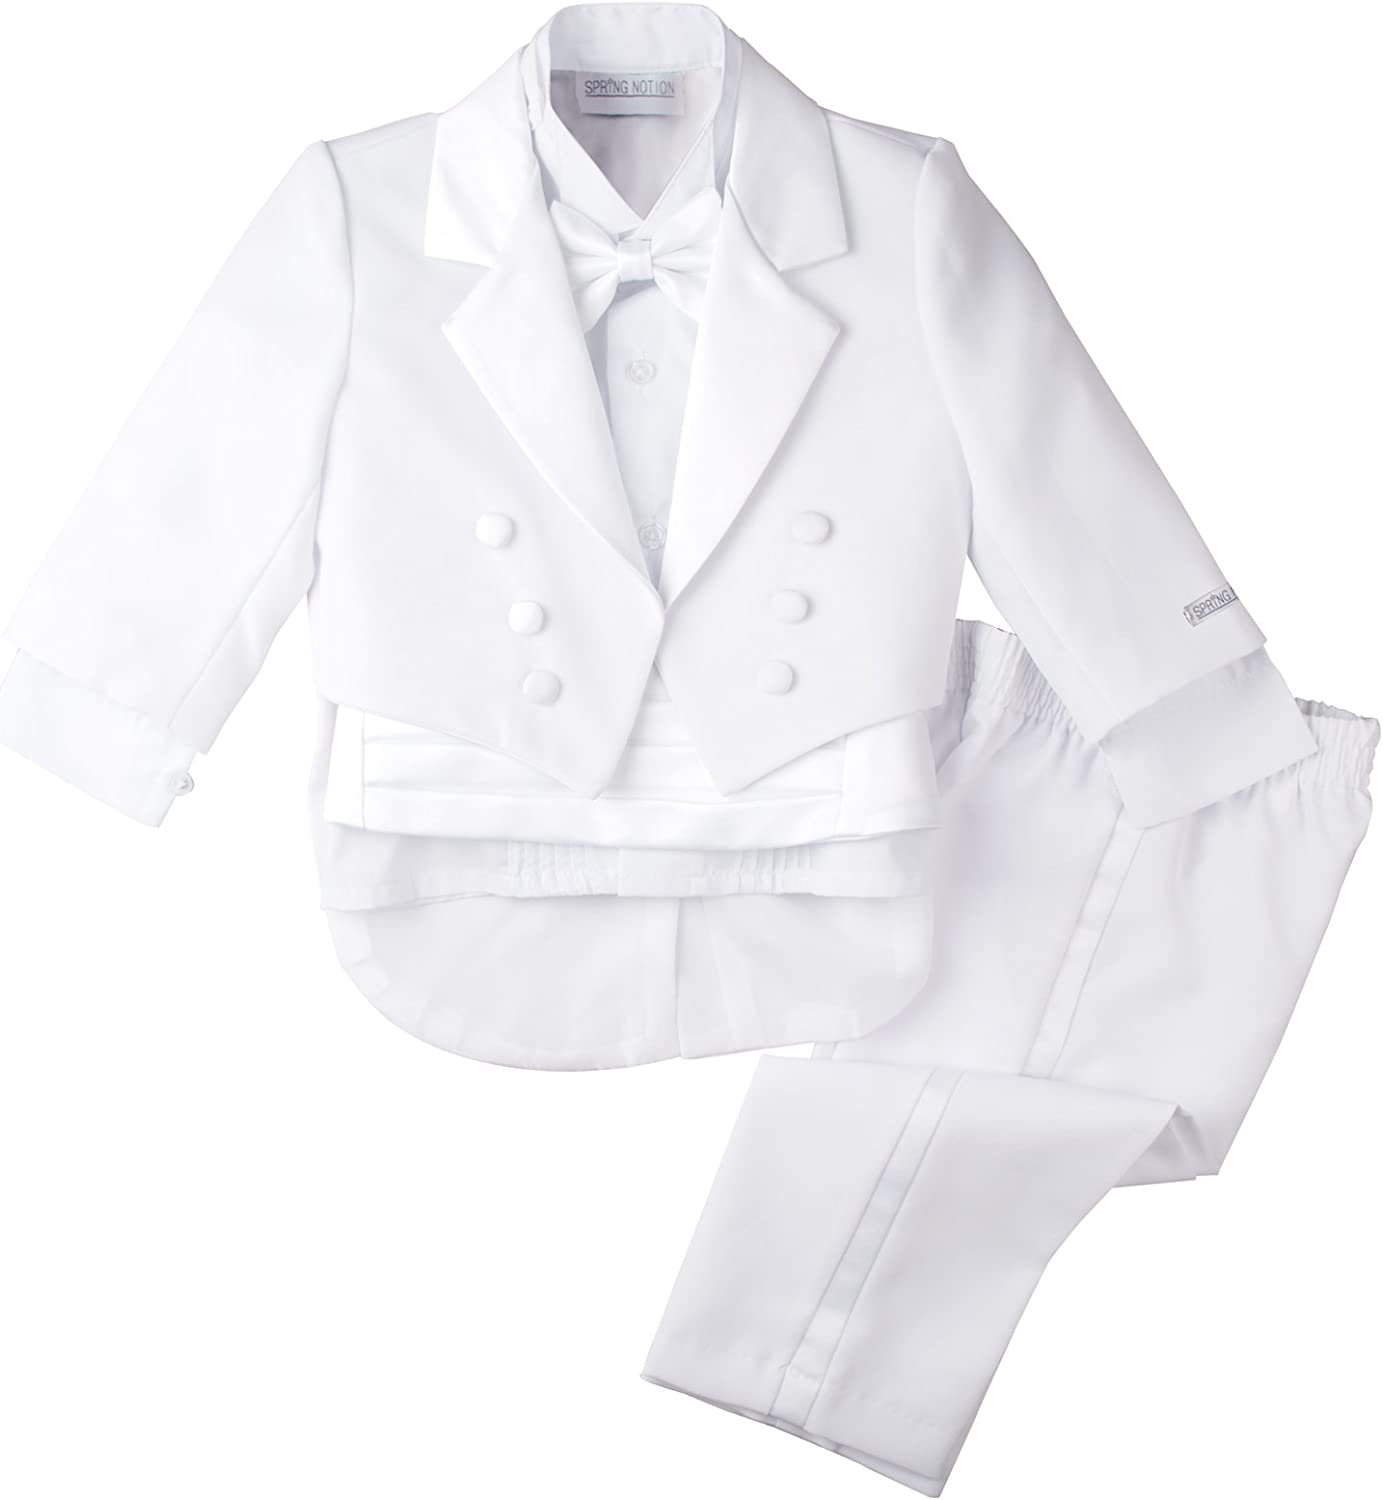 Spring Notion Boys' White with Directly managed store New color Tuxedo Classic Tail